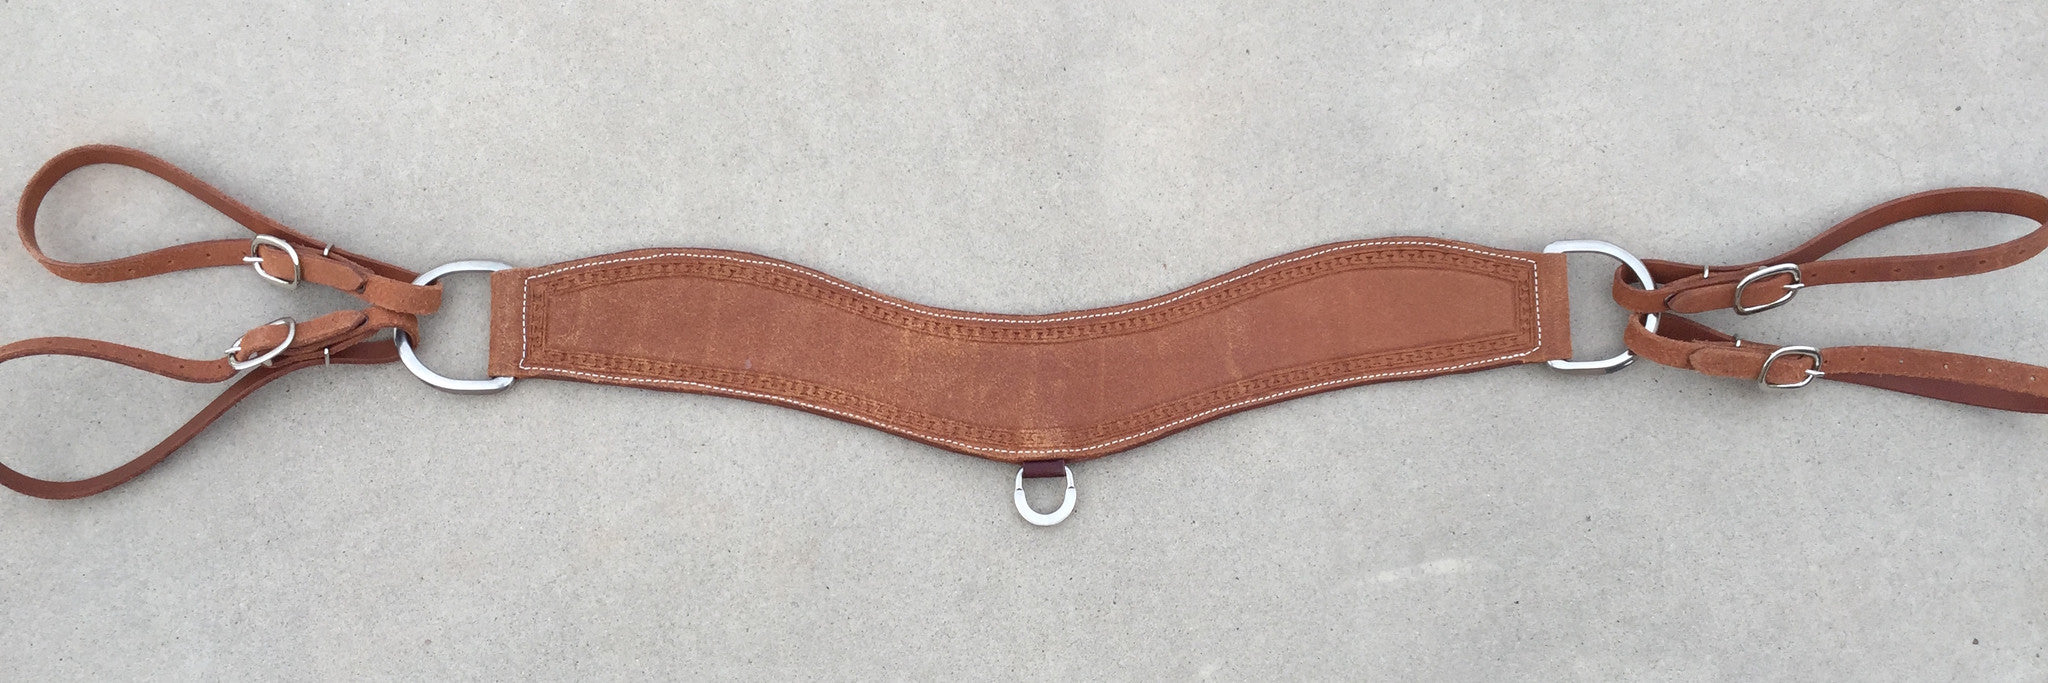 Tripper Roping Breast Collar Rough Out with Running W Trim - The Sale Barn - 1